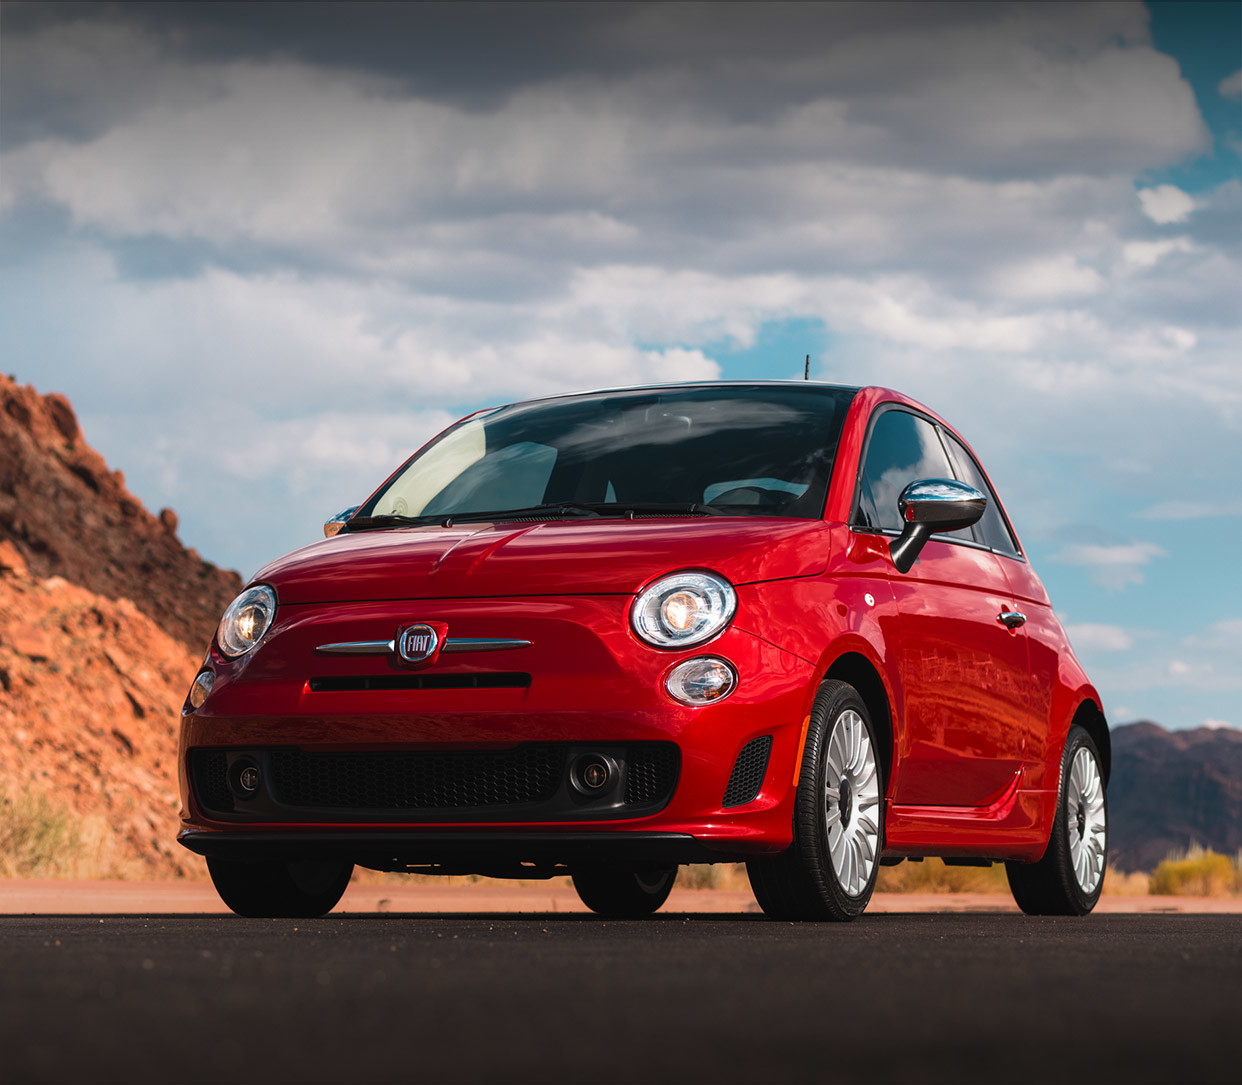 Red 2019 FIAT® 500 parked on a road outdoors by mountains.